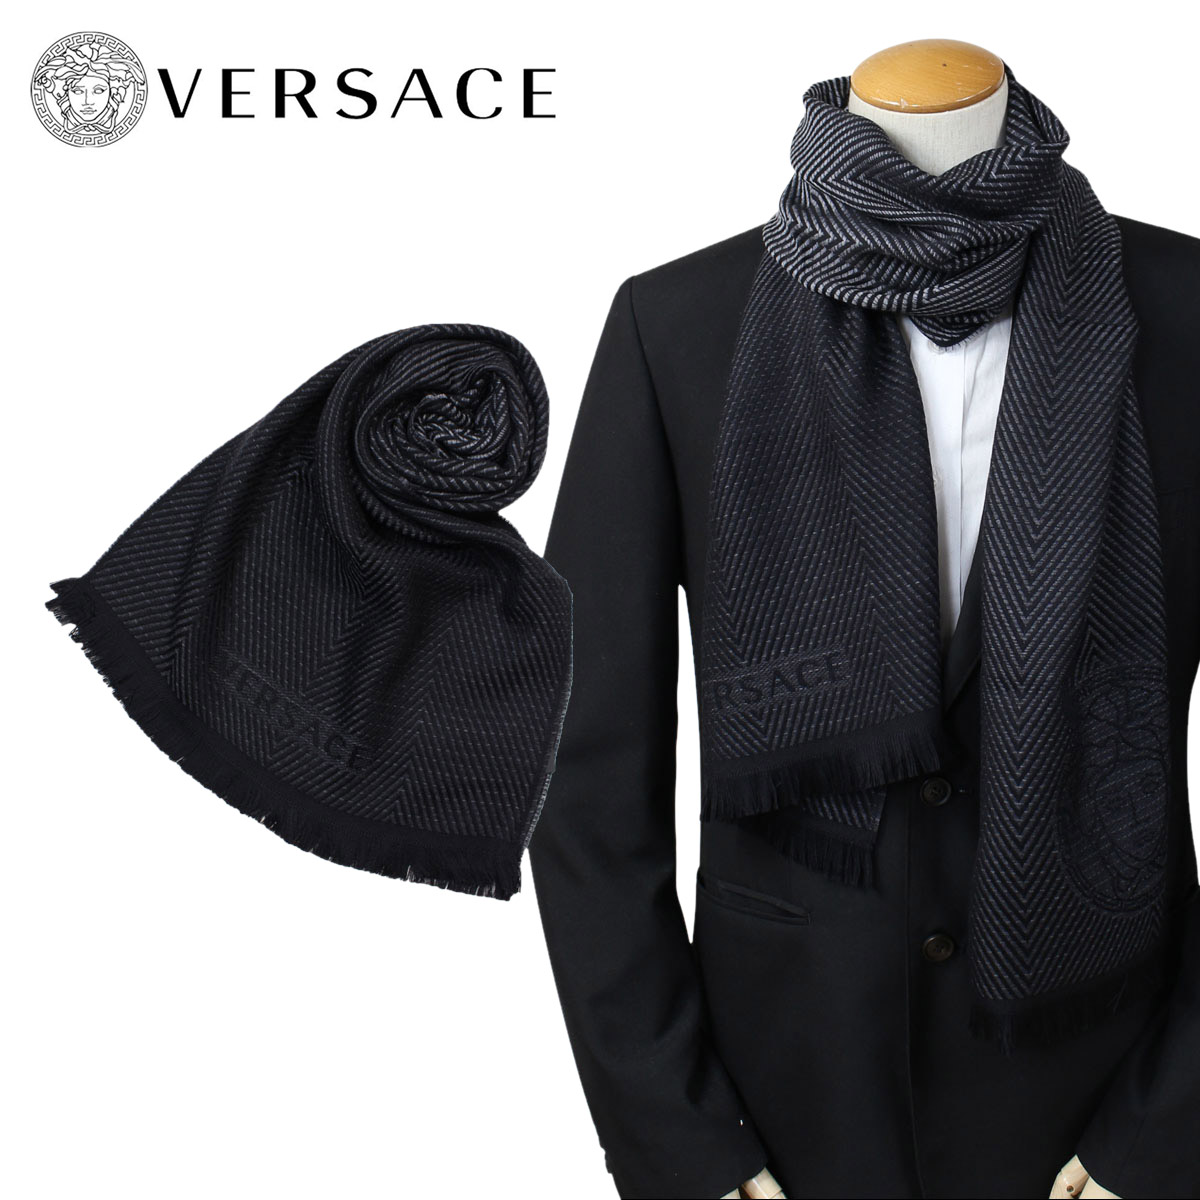 Product made in bell search VERSACE scarf Versace men wool Italy casual  business black black 06450